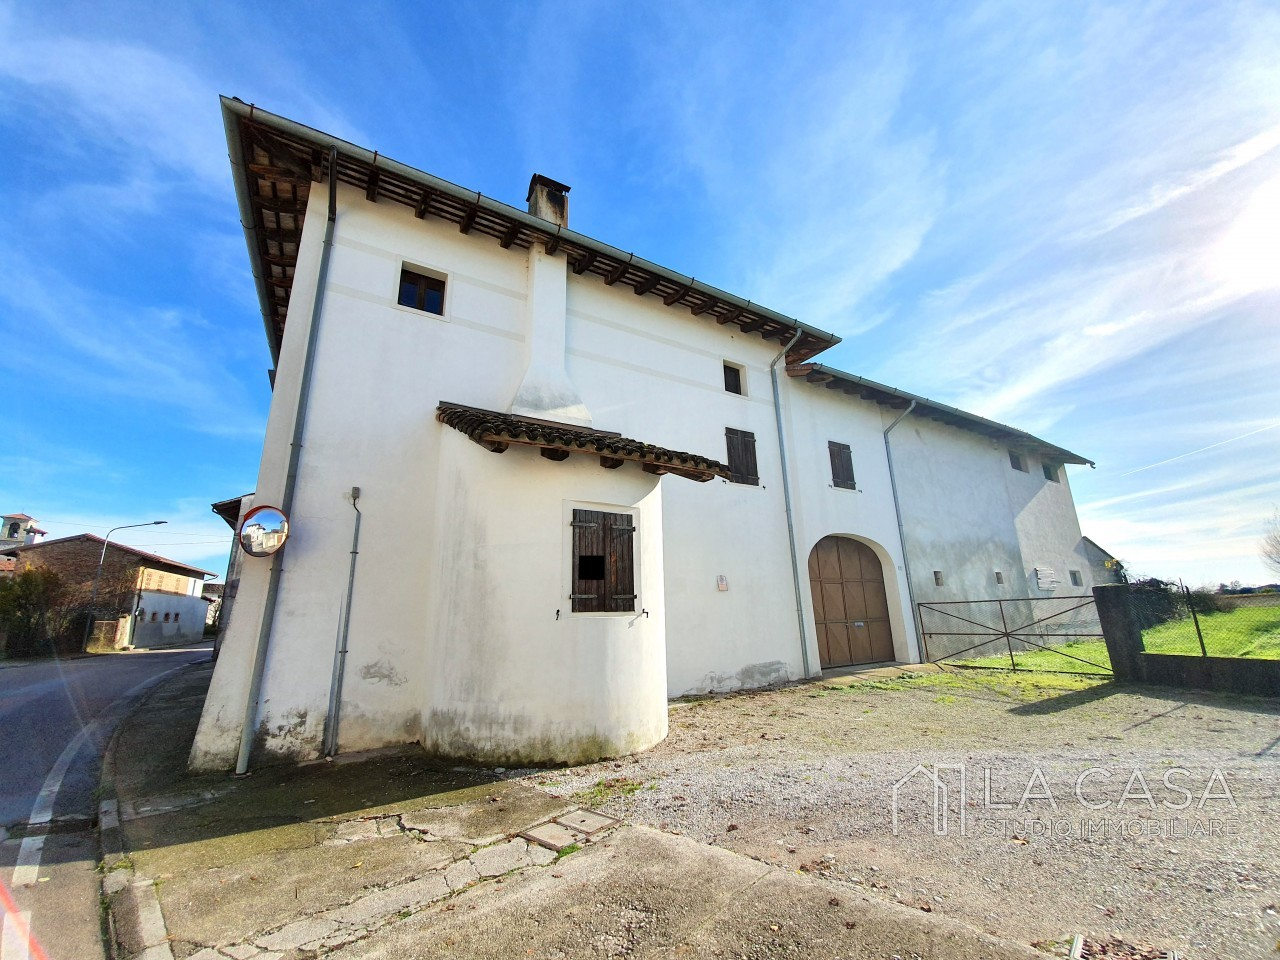 Casa indipendente in Linea - Rif.C6 https://images.gestionaleimmobiliare.it/foto/annunci/191125/2114313/1280x1280/002__20191125_121102_wmk_0.jpg